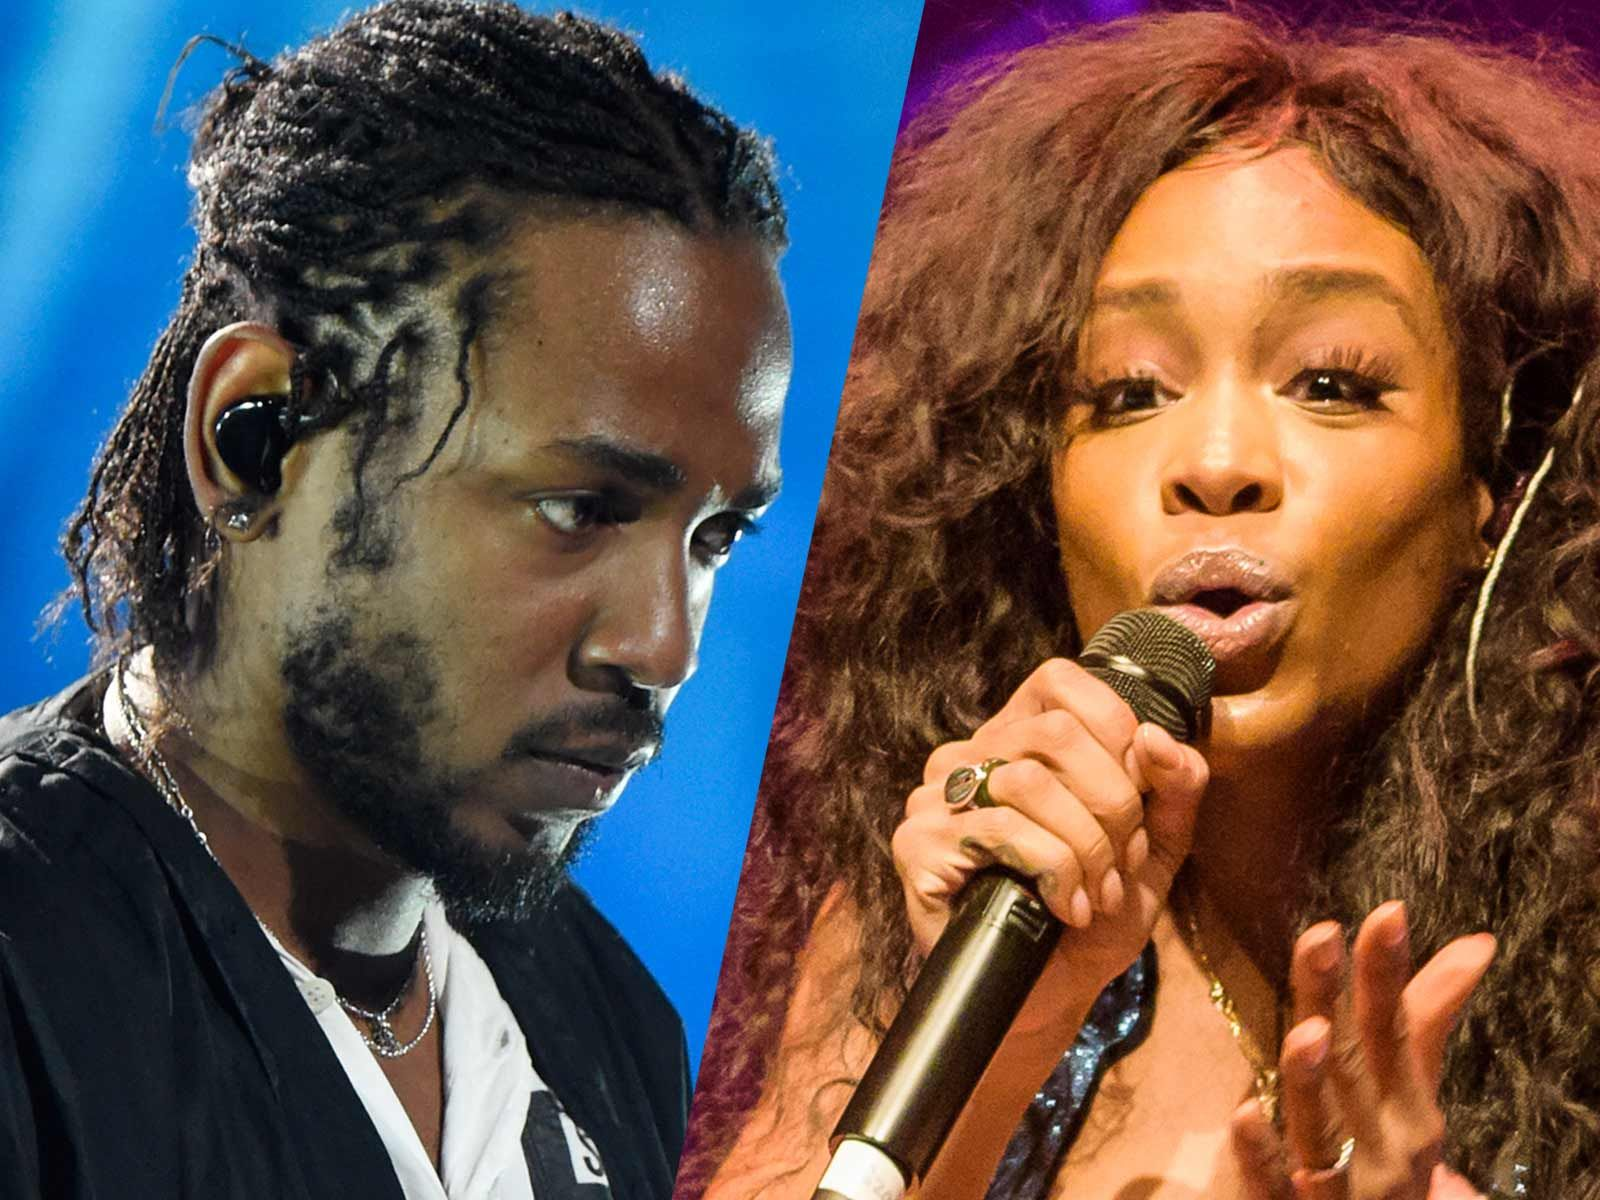 Kendrick Lamar And Sza Deny Ripping Off Black Artist For Black Panther Music Video